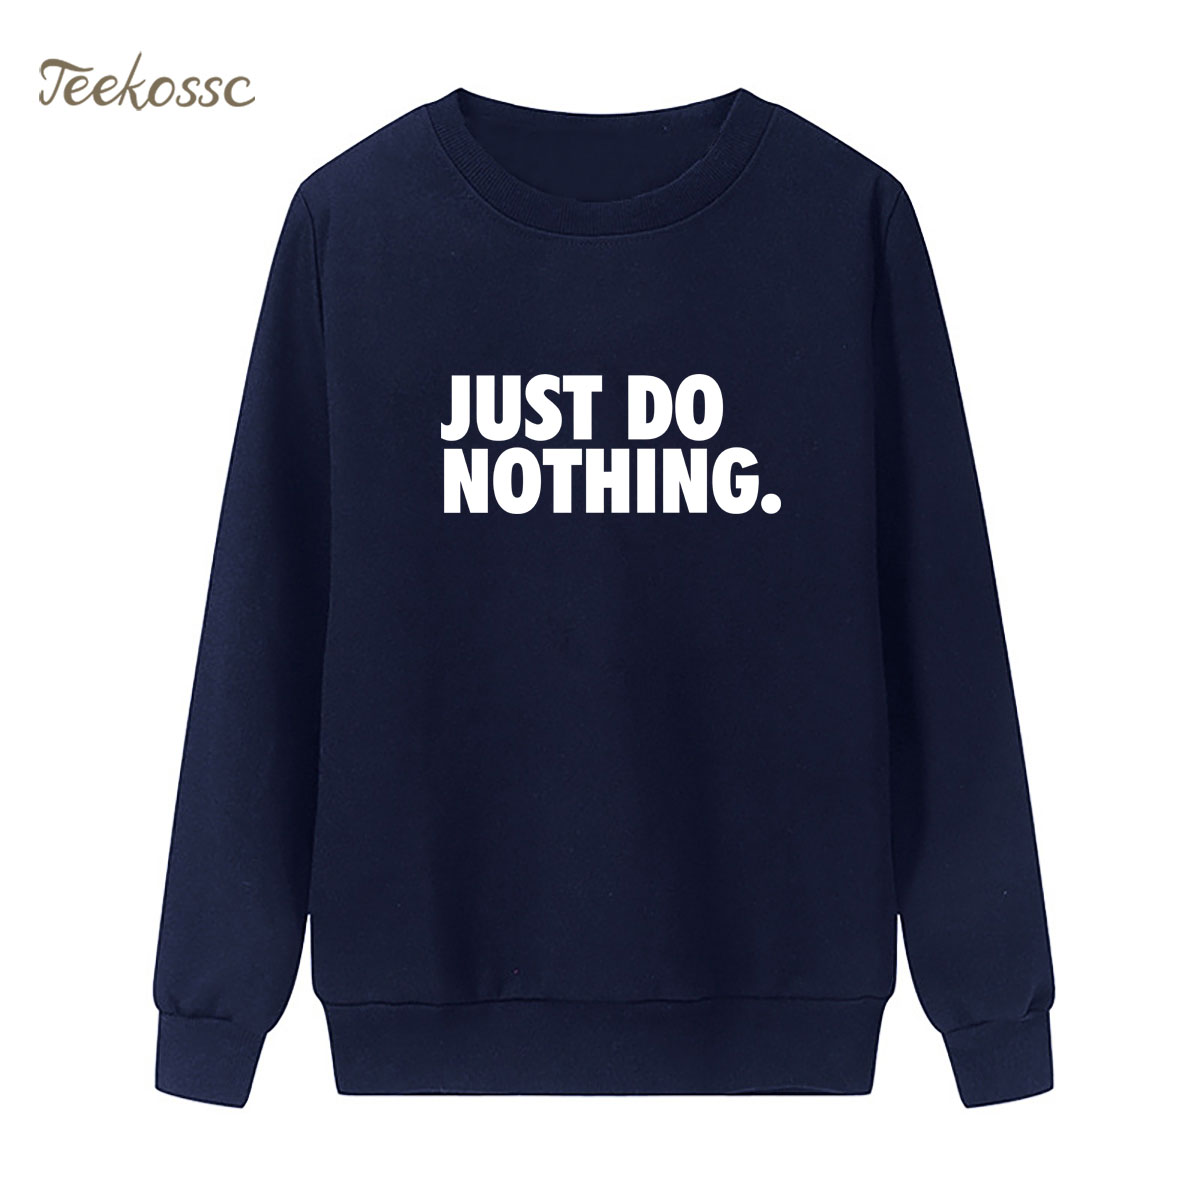 Just Do Nothing Sweatshirts Women Letter Print Hoodies Winter Autumn Lady Pullover Fleece Warm Loose Casual Hipster Sportswear